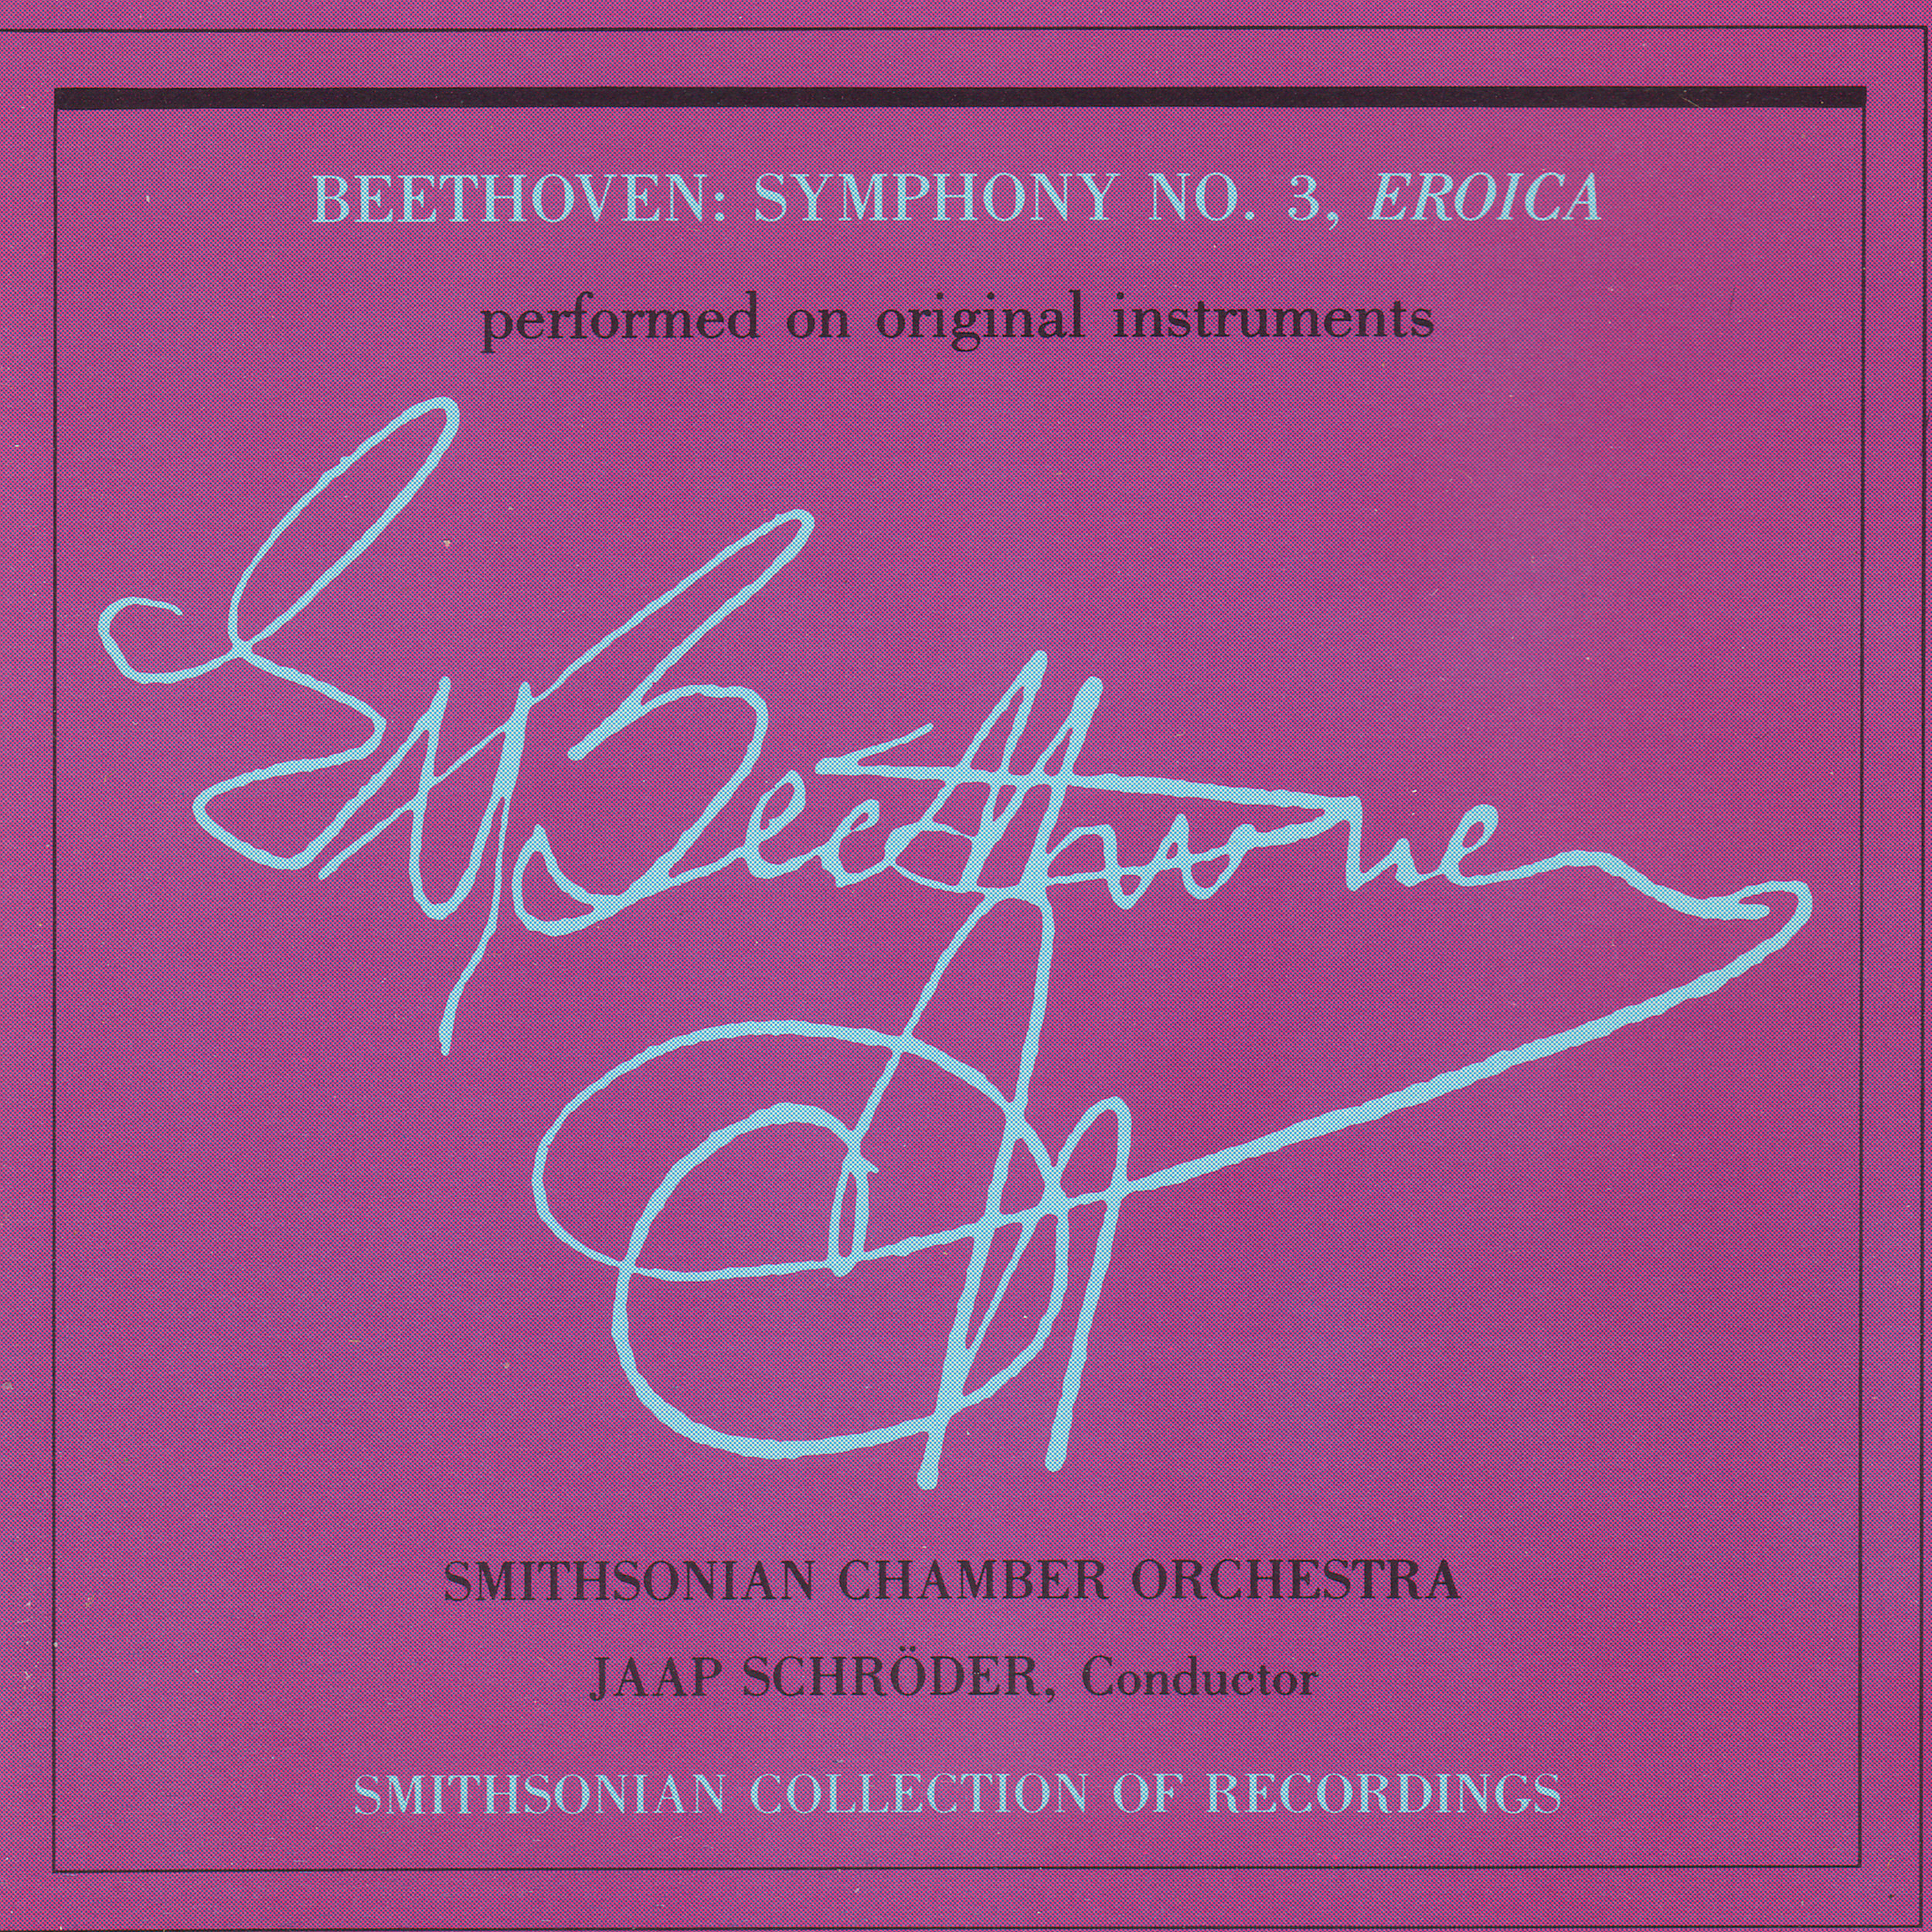 beethoven sym no 3 smithsonian.jpg